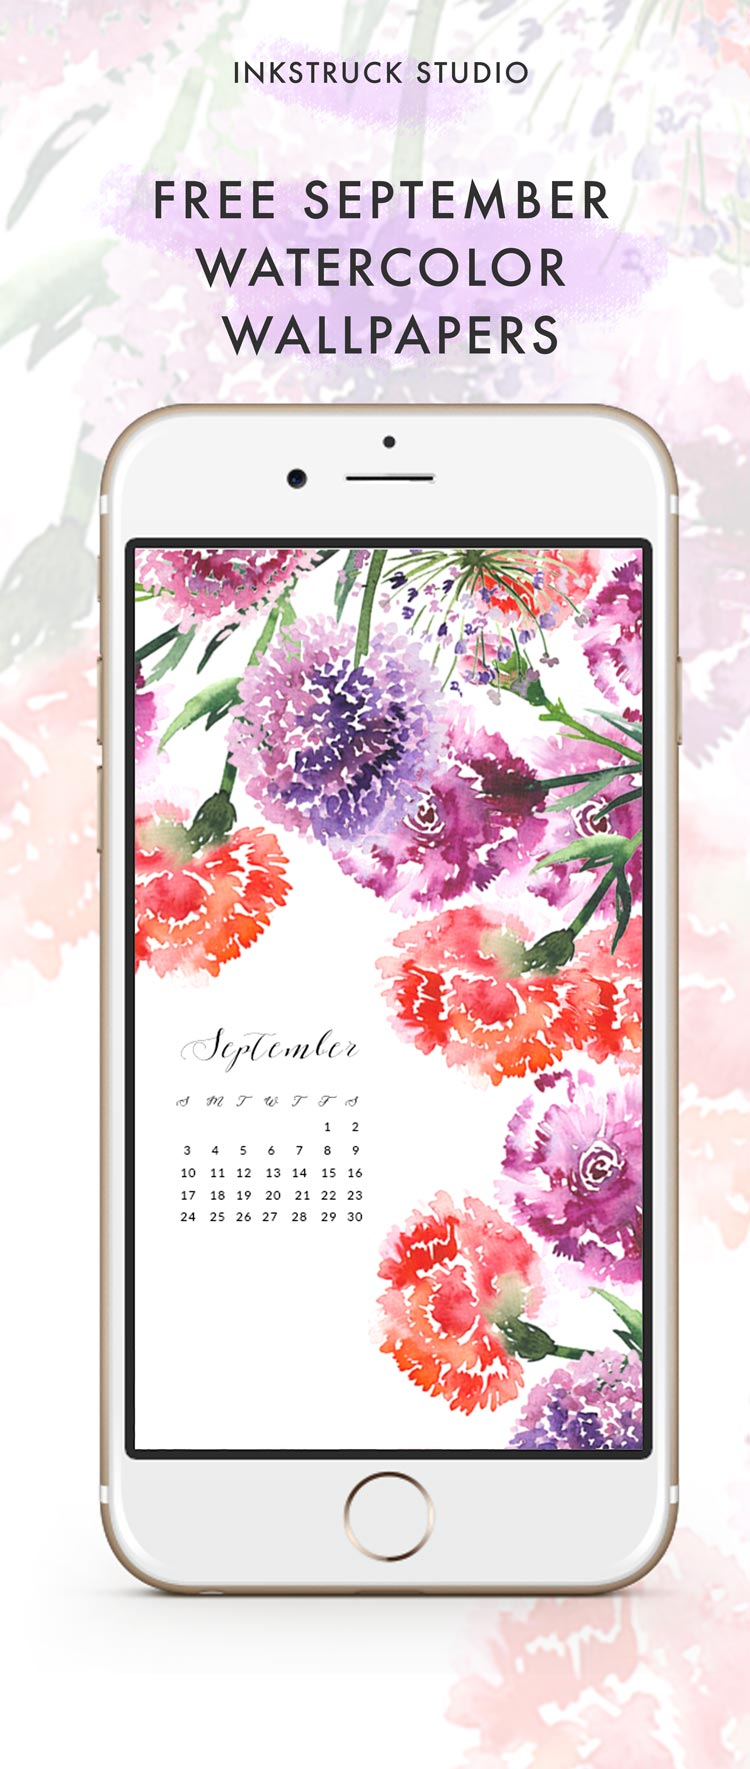 Free September watercolor wallpapers - Inkstruck Studio